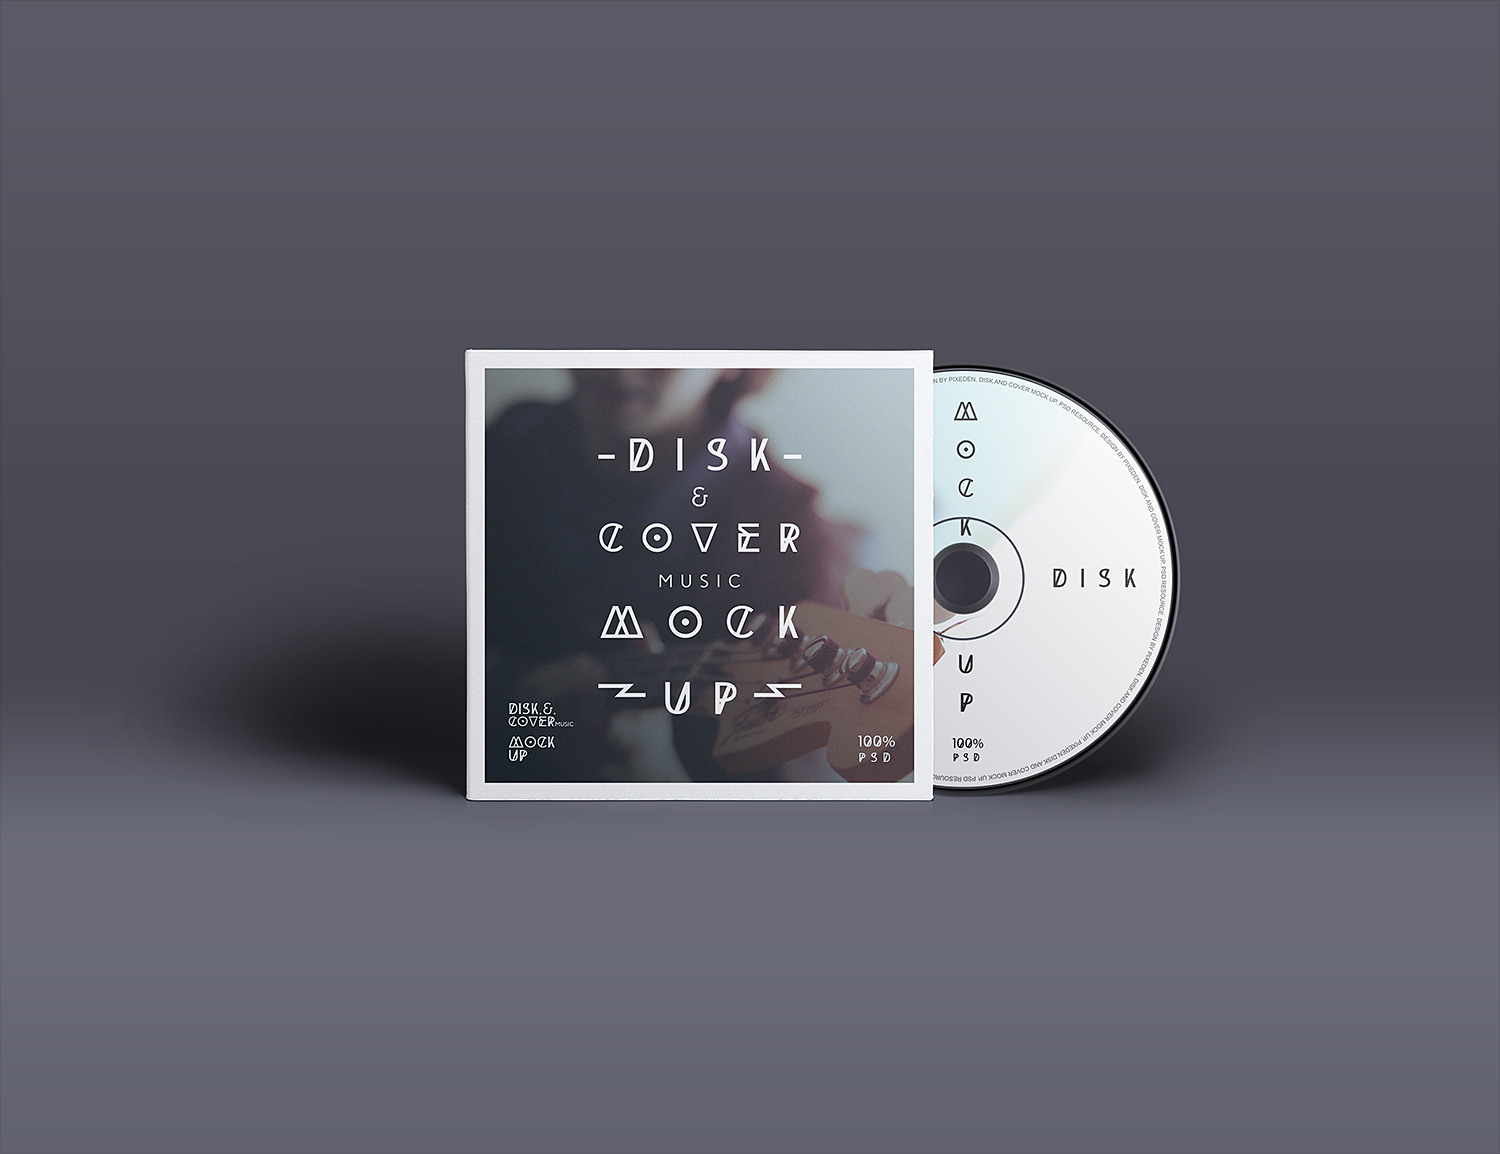 CD Cover Mockup Photoshop PSD